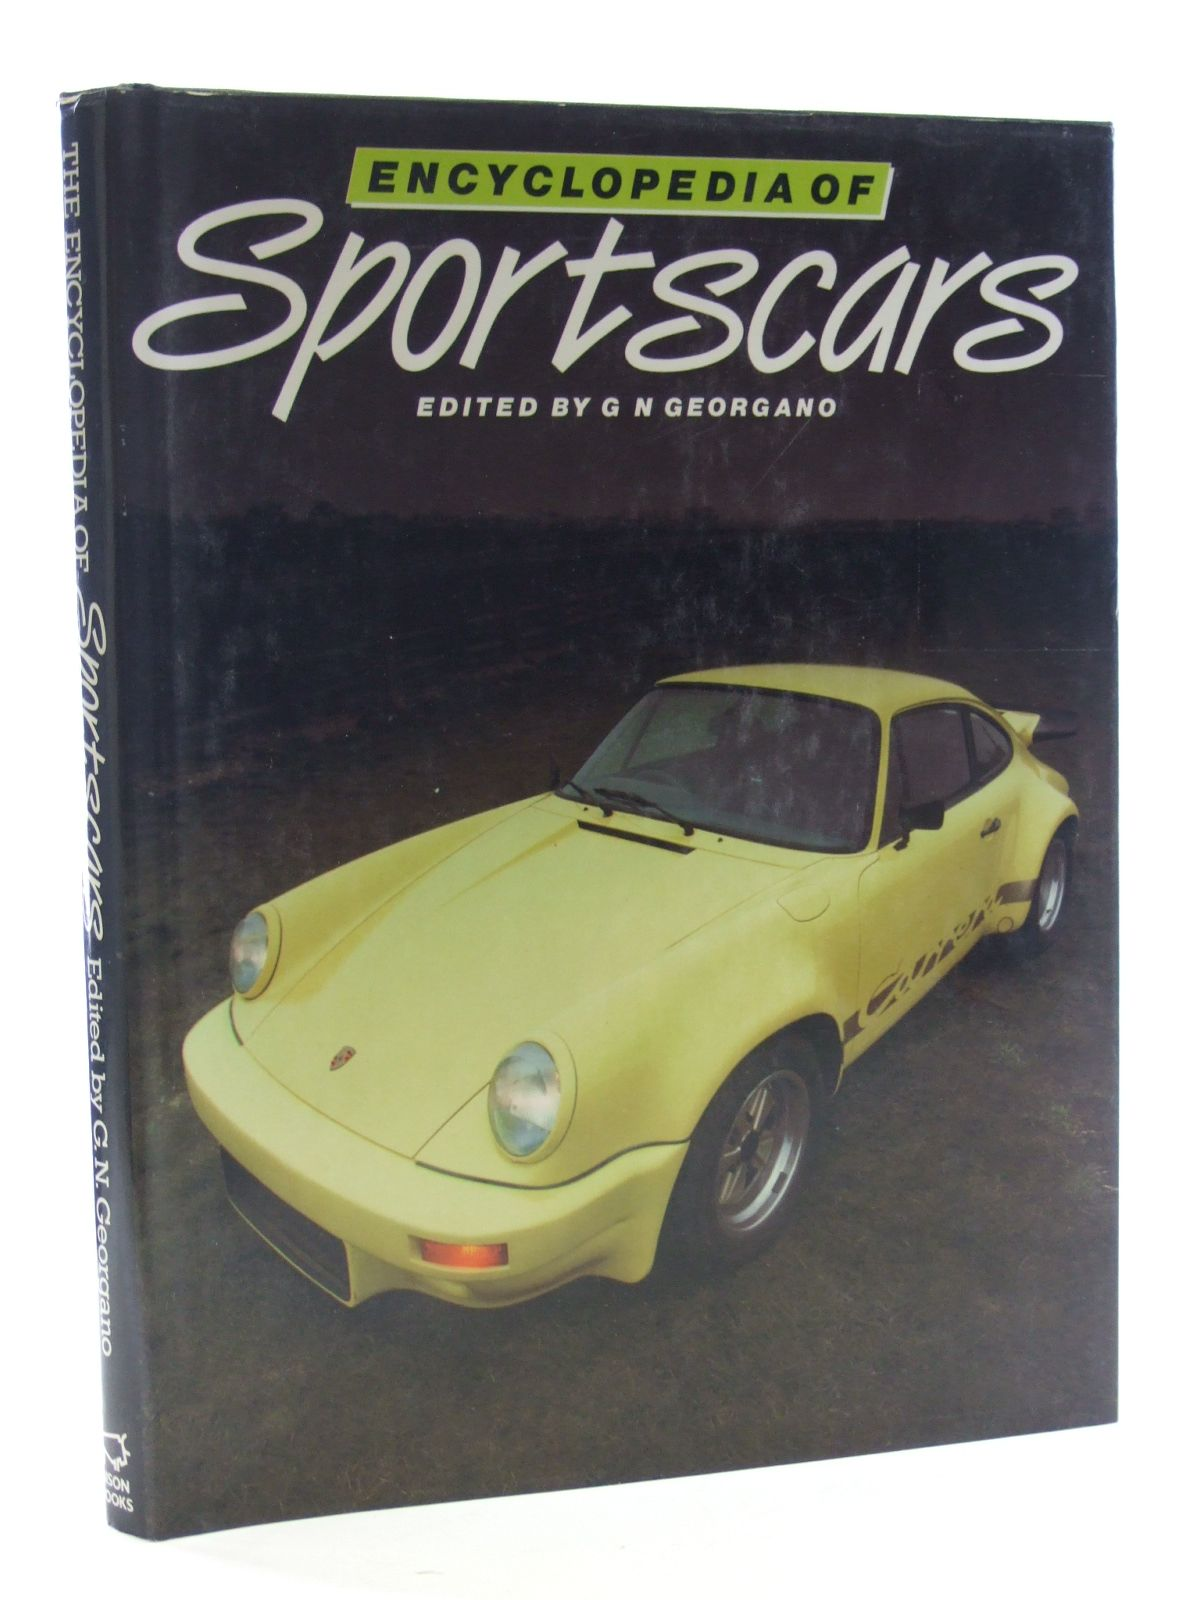 Photo of THE ENCYCLOPEDIA OF SPORTSCARS written by Georgano, G.N. published by Bison Books (STOCK CODE: 1602654)  for sale by Stella & Rose's Books